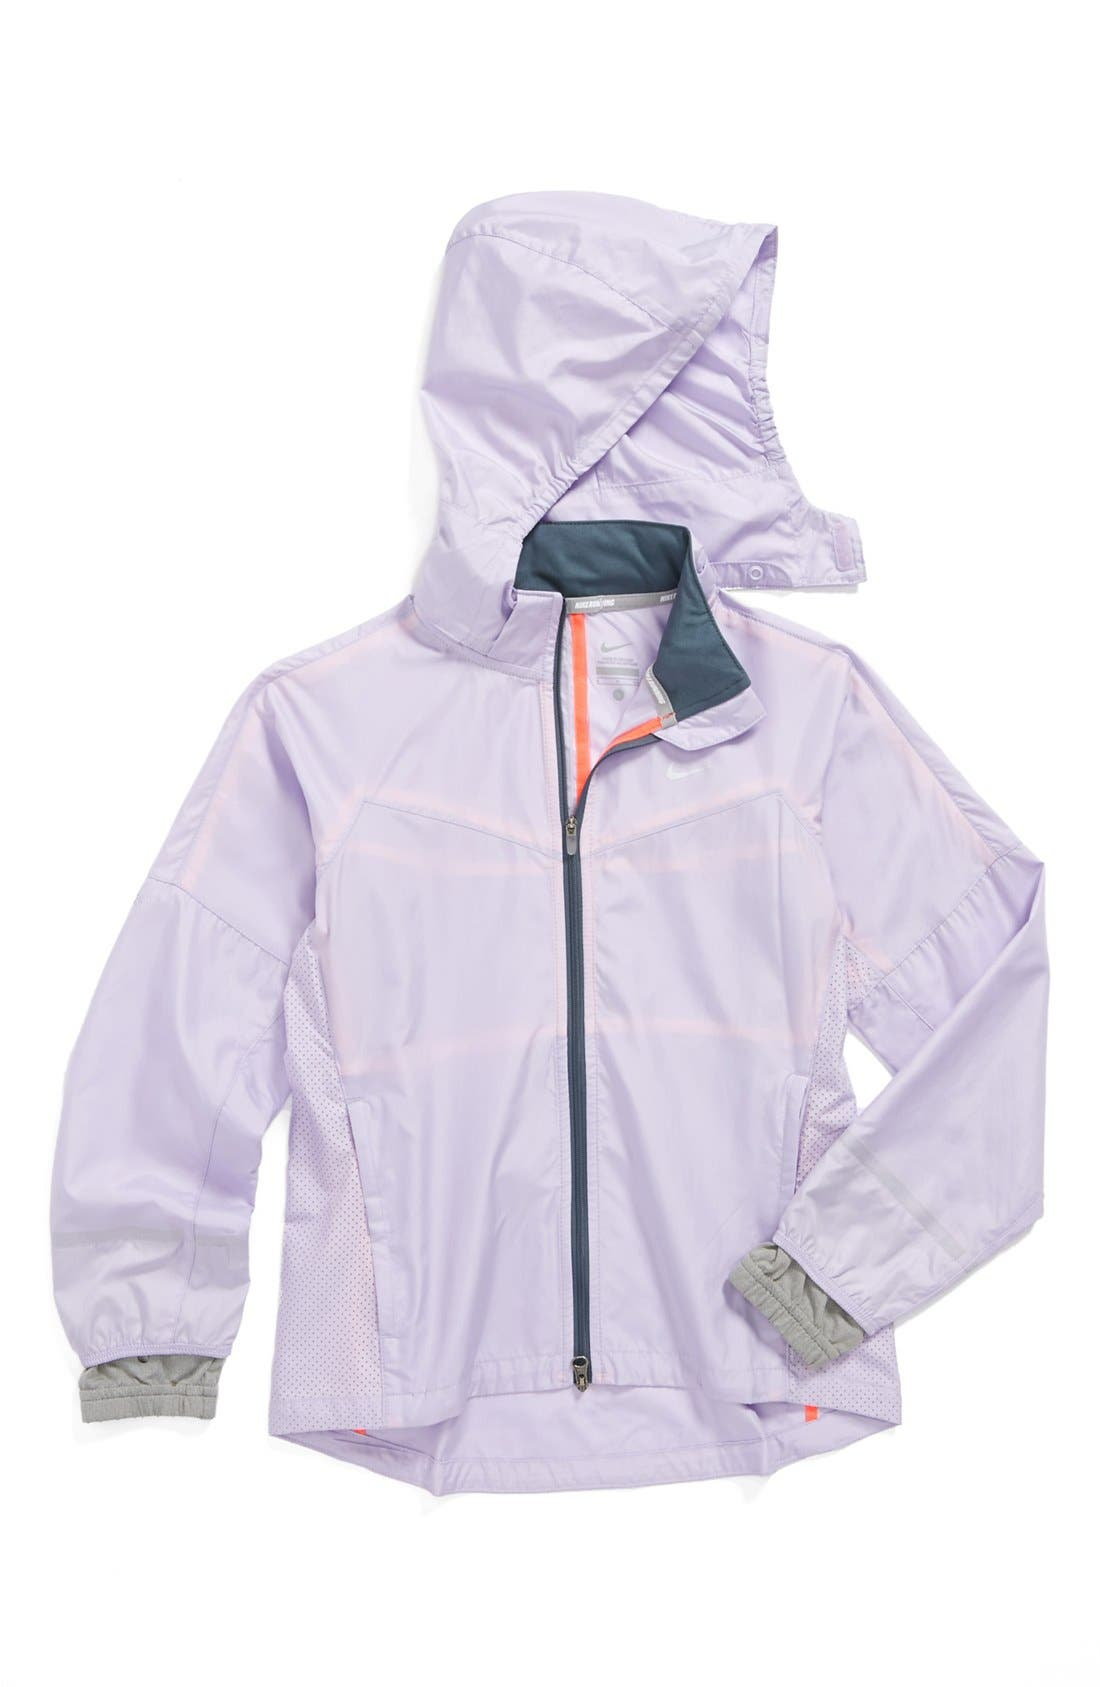 Alternate Image 1 Selected - Nike 'Vapor' Running Jacket (Little Girls & Big Girls)